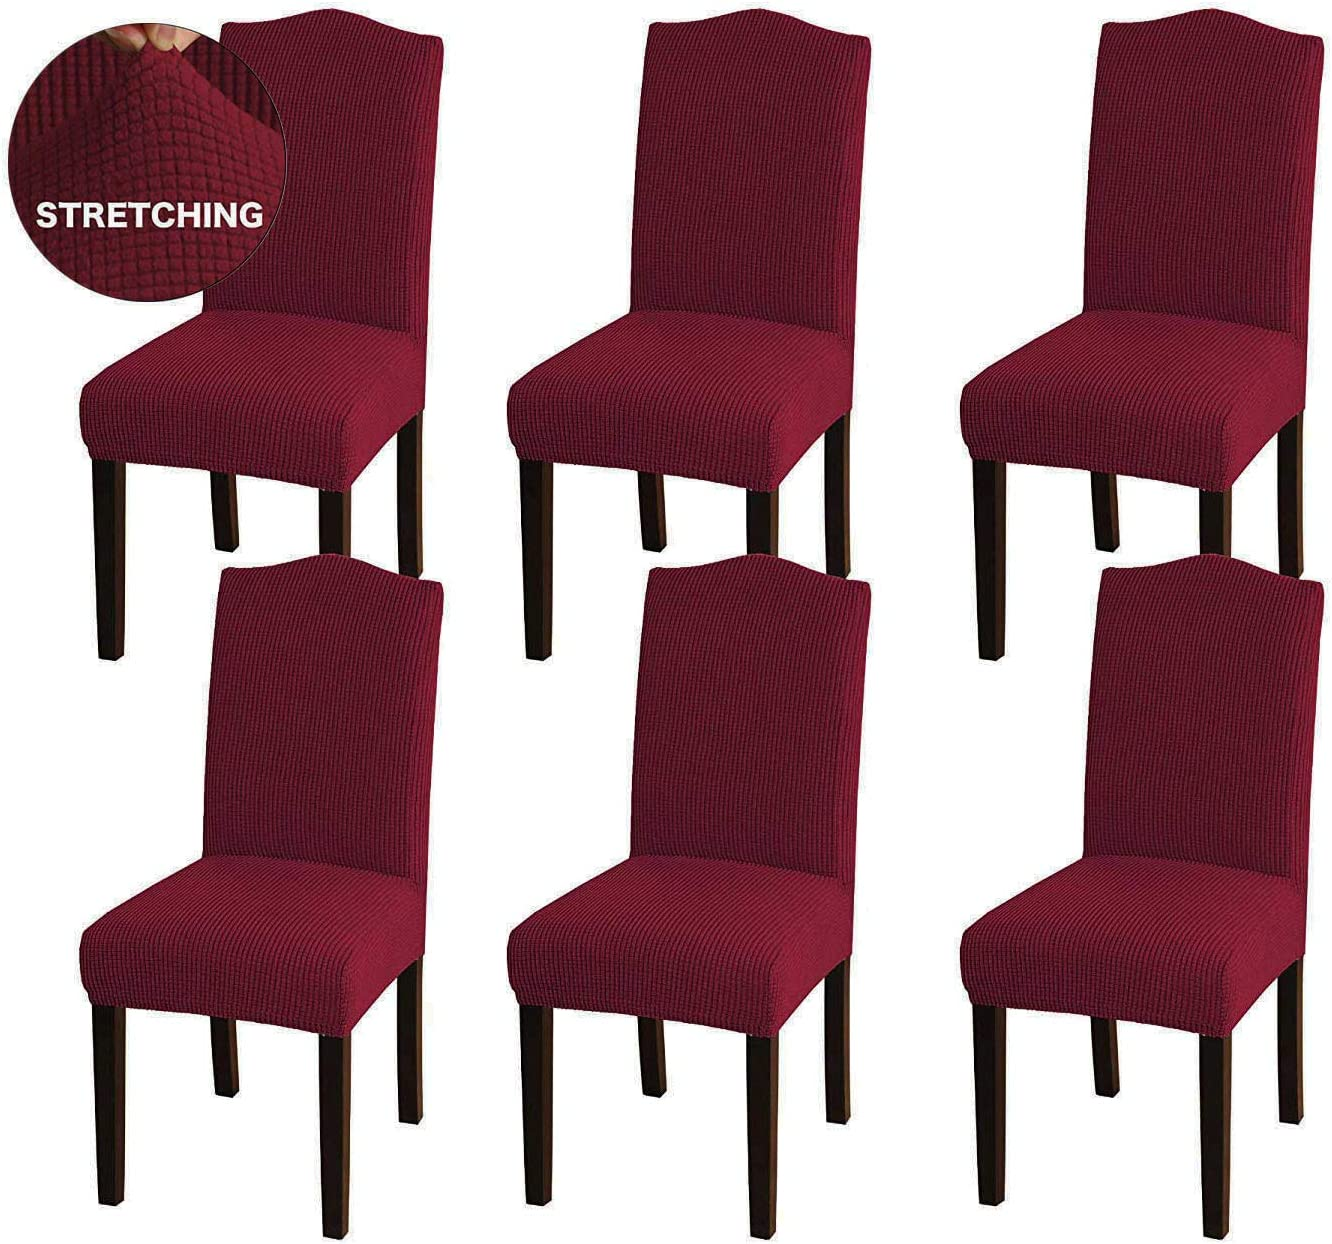 AWLAND Dining Chair Slipcovers Protector Removable Short Stretch Spandex Dining Room Banquet Chair Seat Cover for Kitchen Bar Hotel and Wedding Ceremony 4 Pack Red